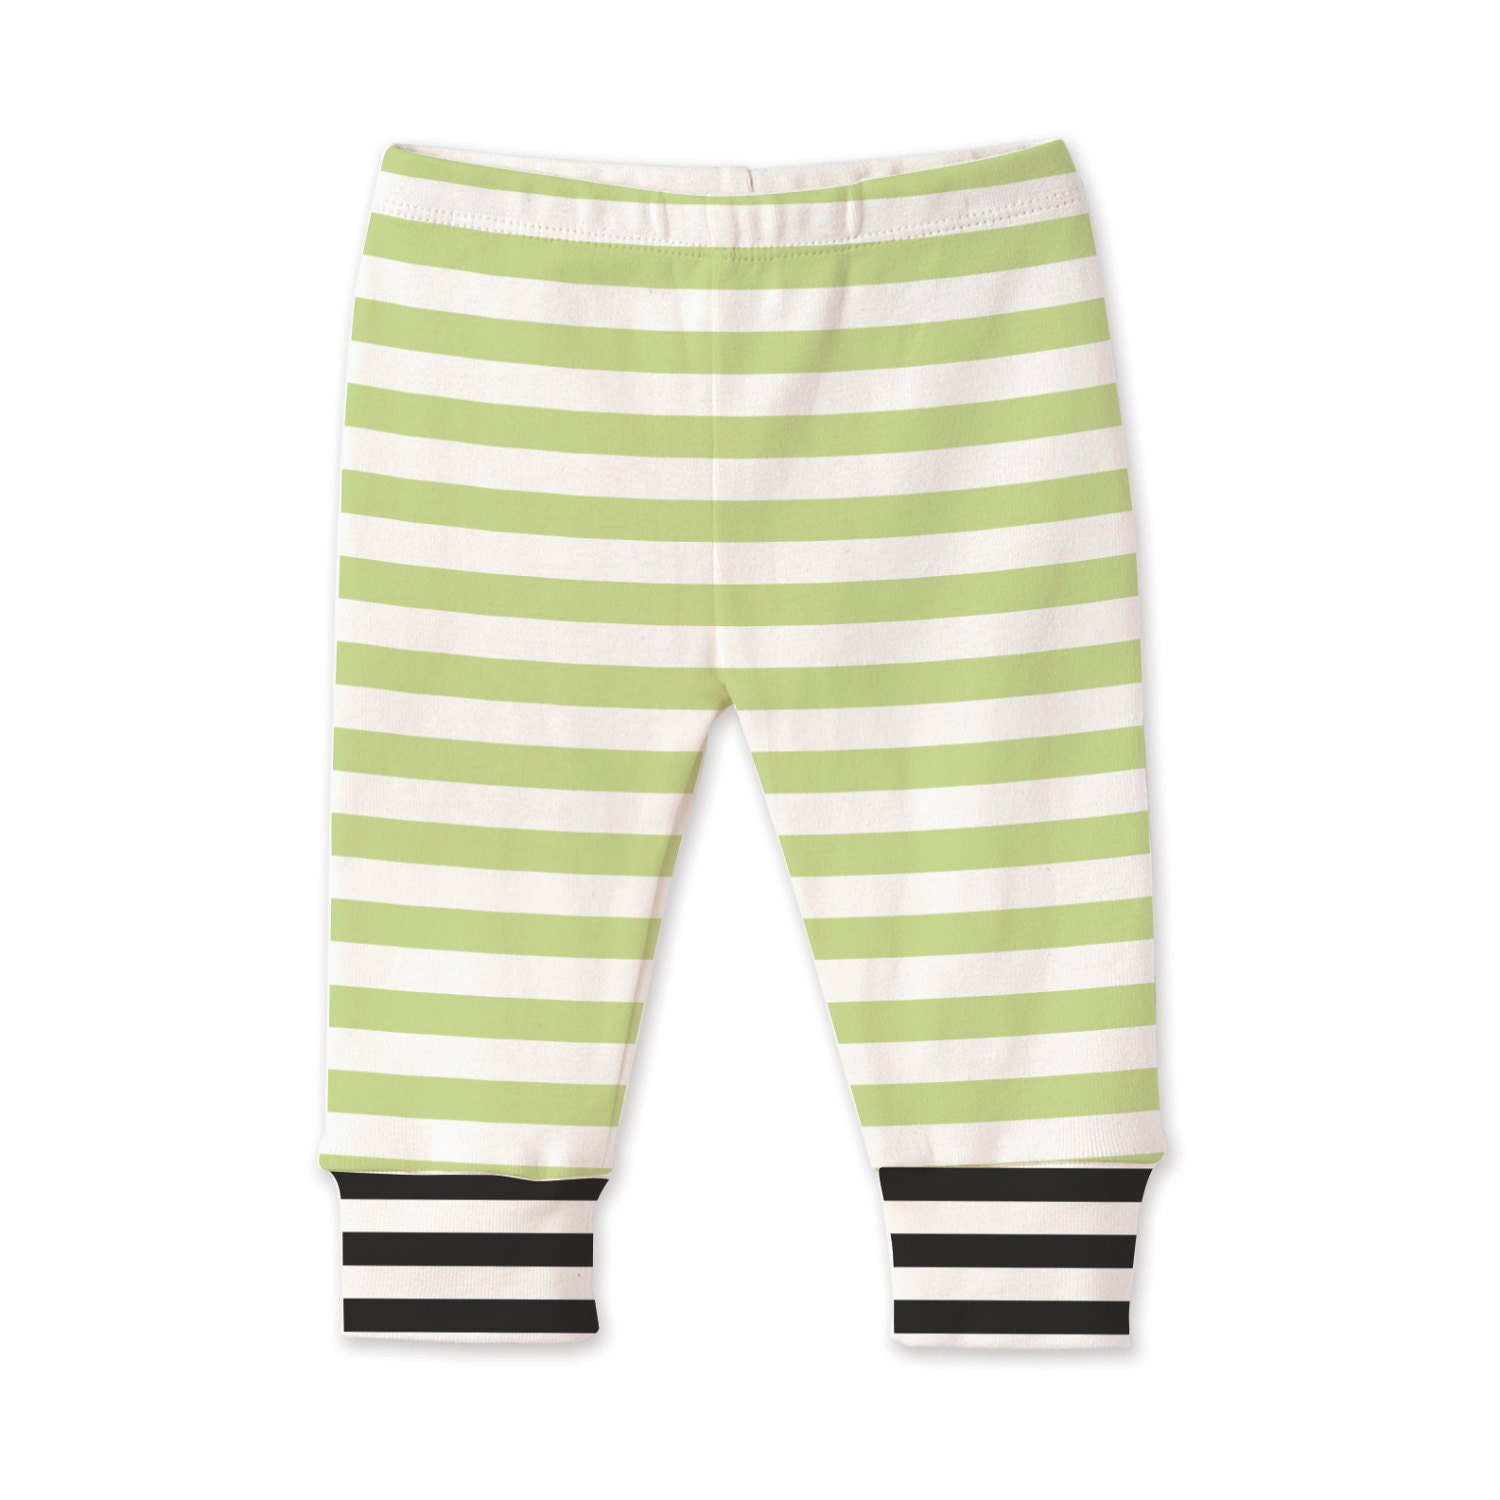 SUMMER SALE Baby Boy Outfit Baby Boy T shirt & Sweats